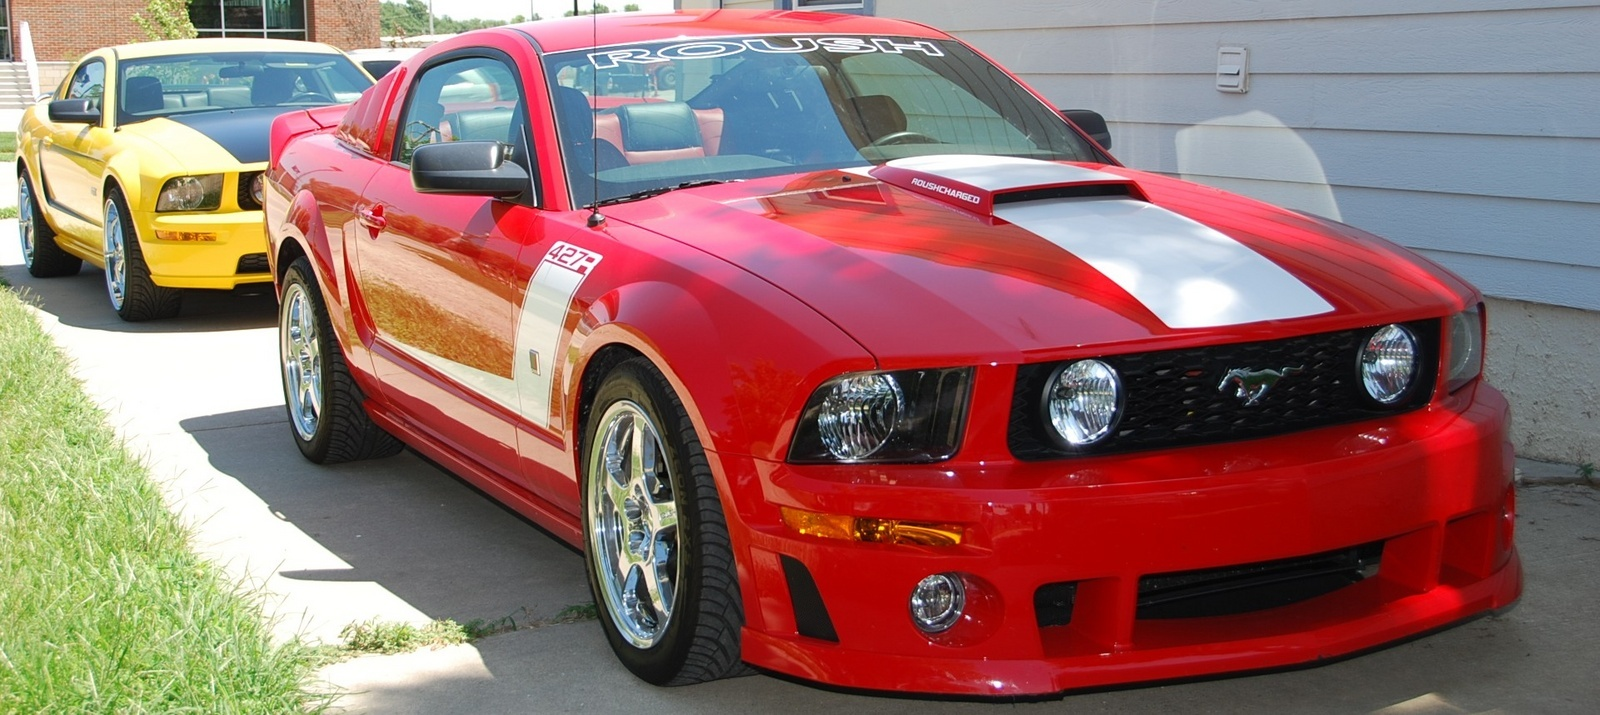 2000 mustang gt or a 2000 roush